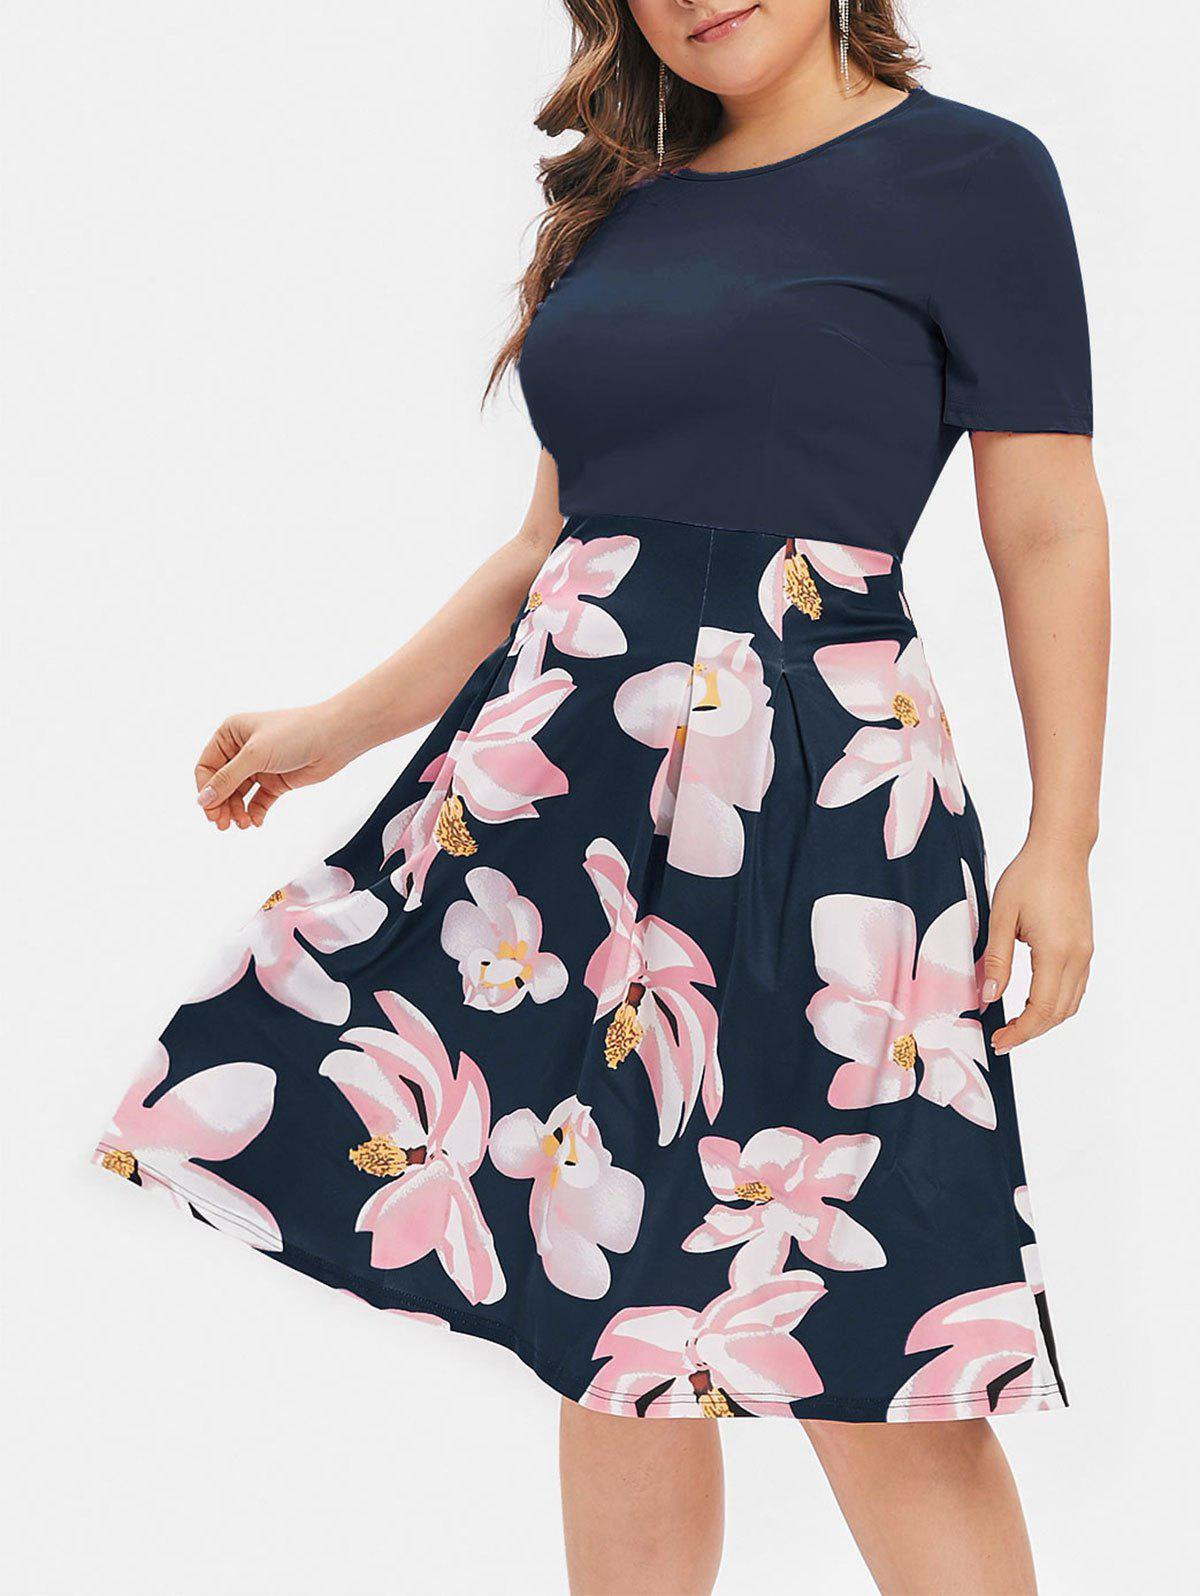 91352d45016 36% OFF   2019 Flower Plus Size Midi A Line Dress